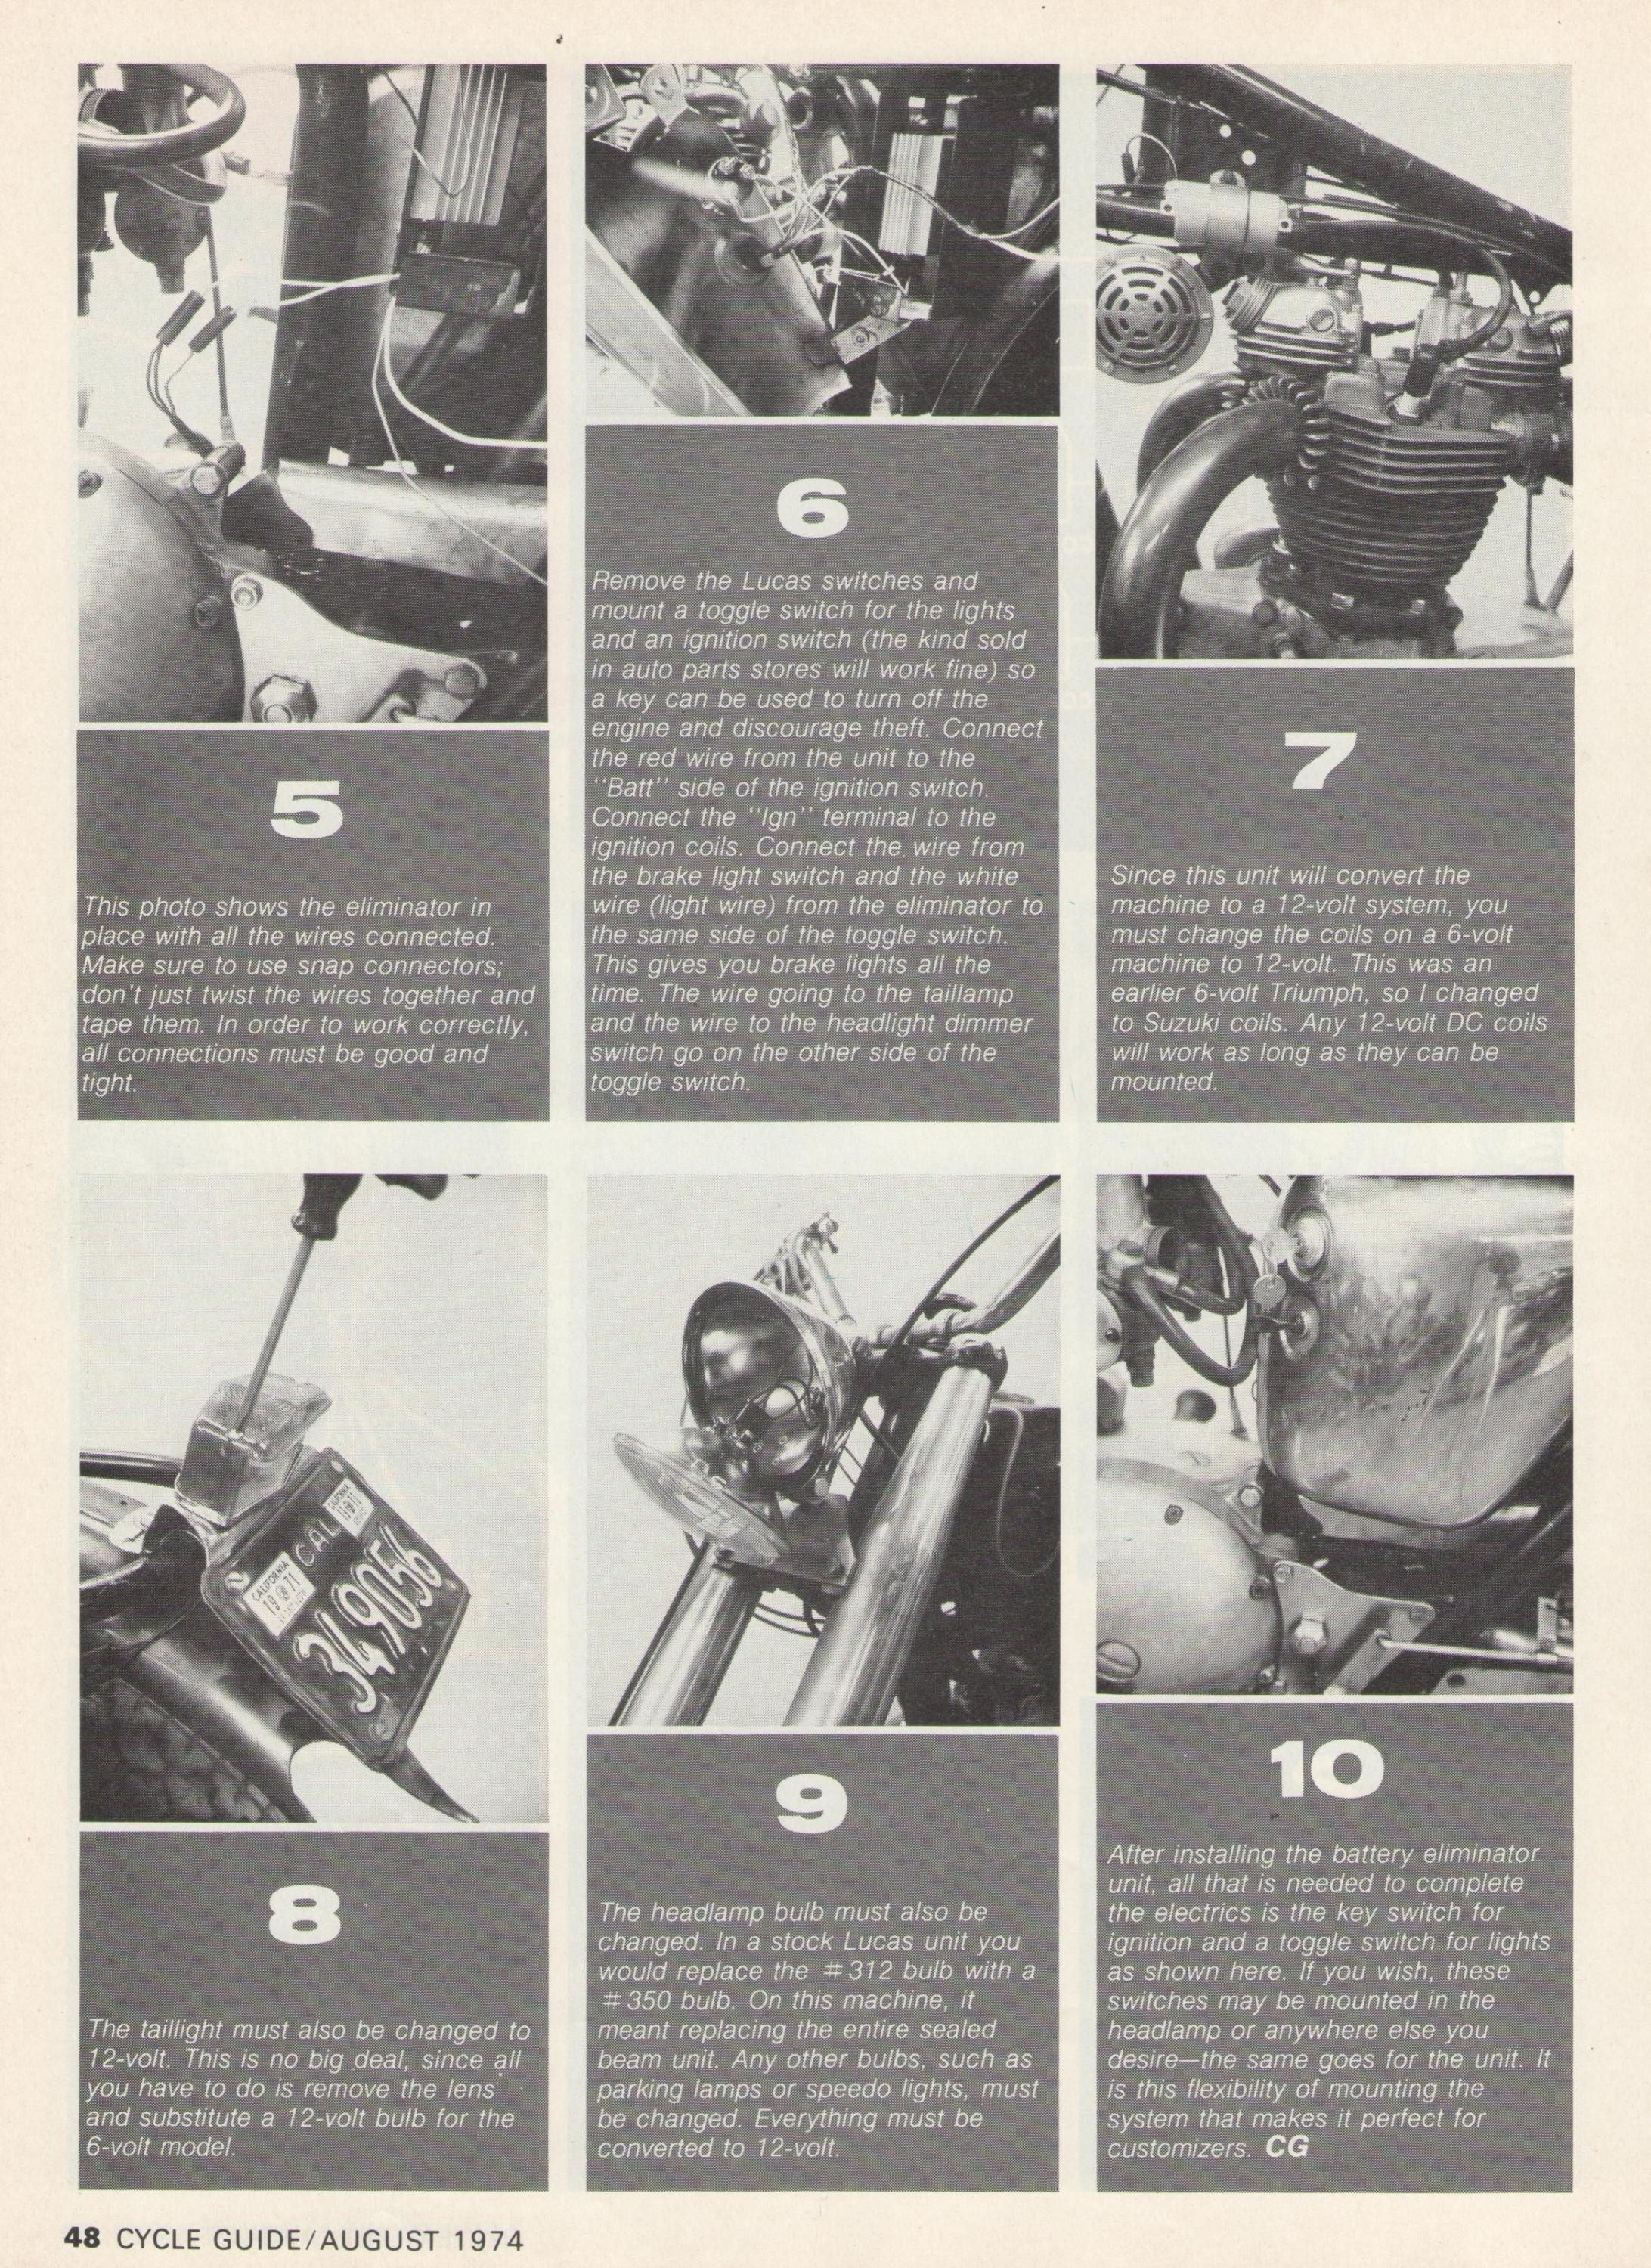 installing a battery eliminator tech article cycle guide magazine August 1974-battery-eliminator-p.3.jpg